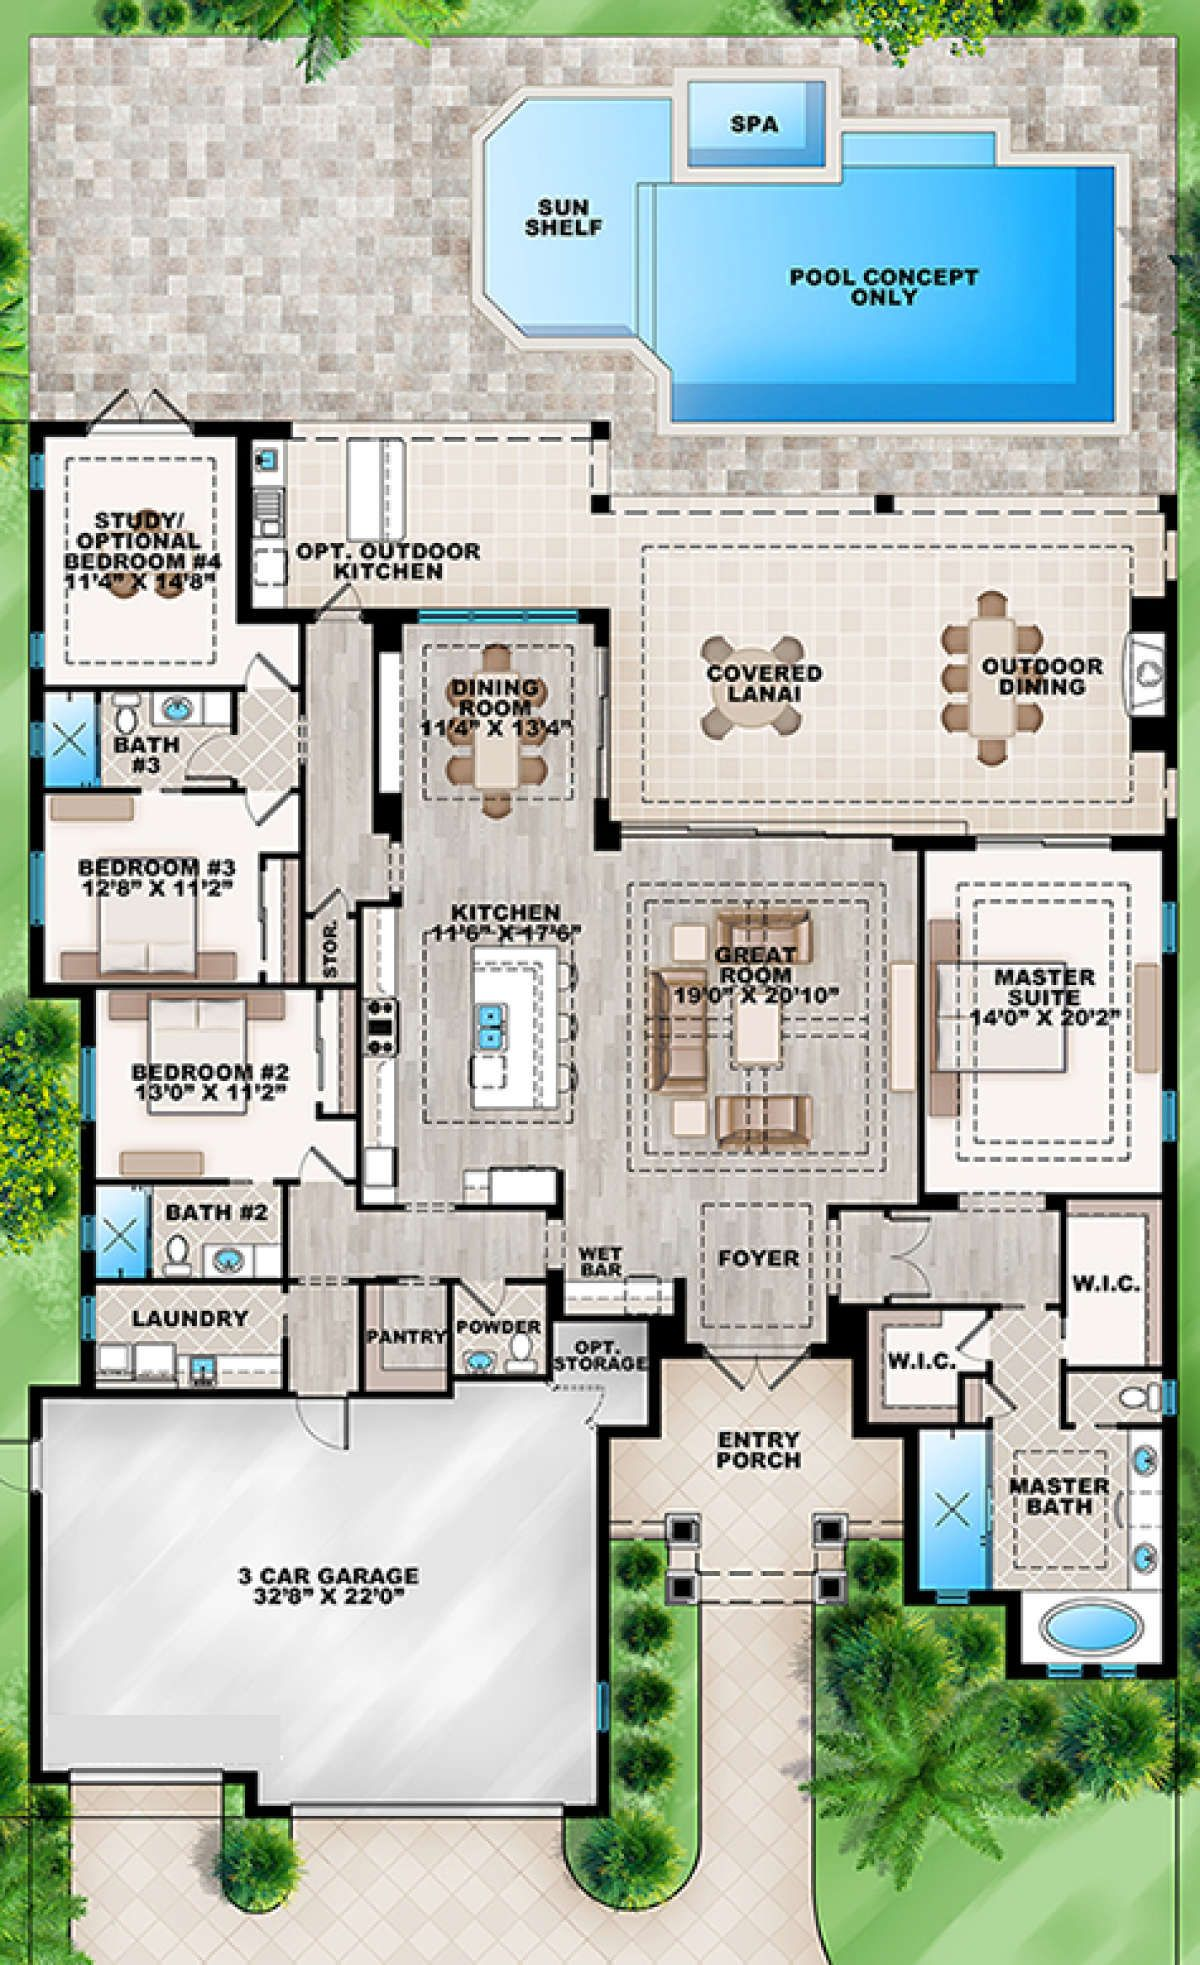 House Plan 207 00029 Contemporary Plan 2 933 Square Feet 3 4 Bedrooms 3 5 Bathrooms Florida House Plans Modern House Plans Contemporary House Plans